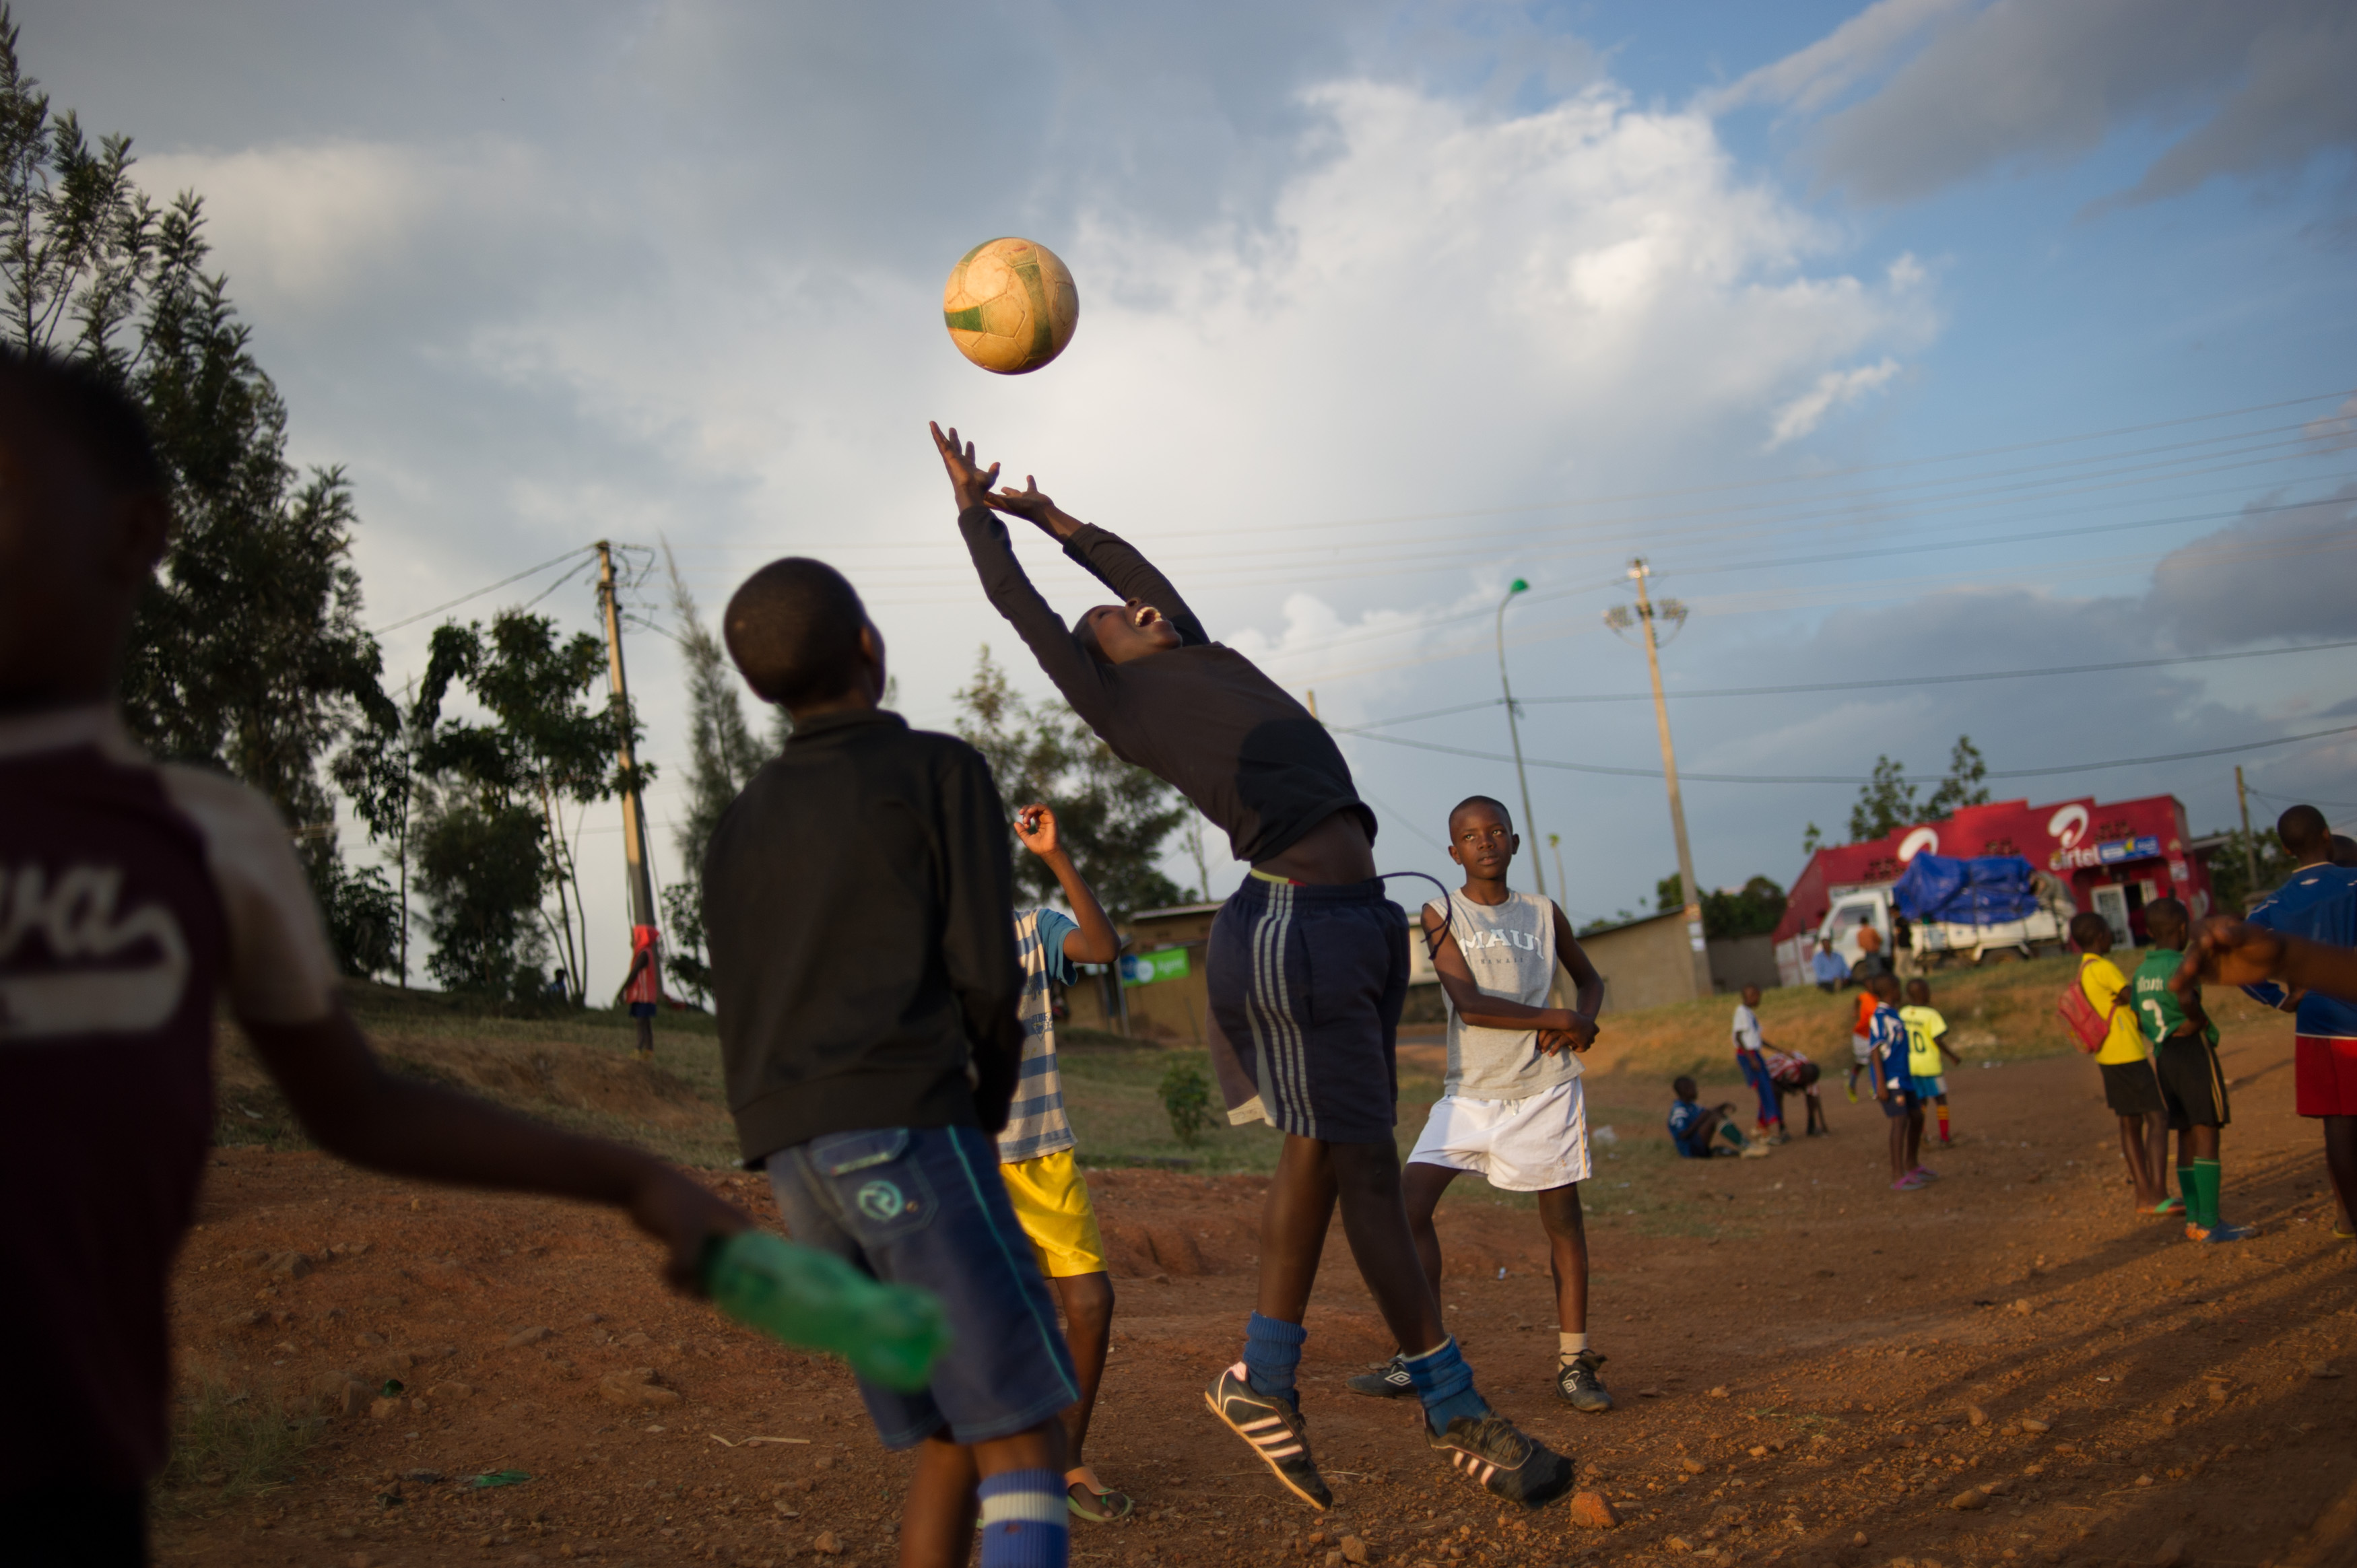 Rwanda's youth to benefit from China sporting ties, says official